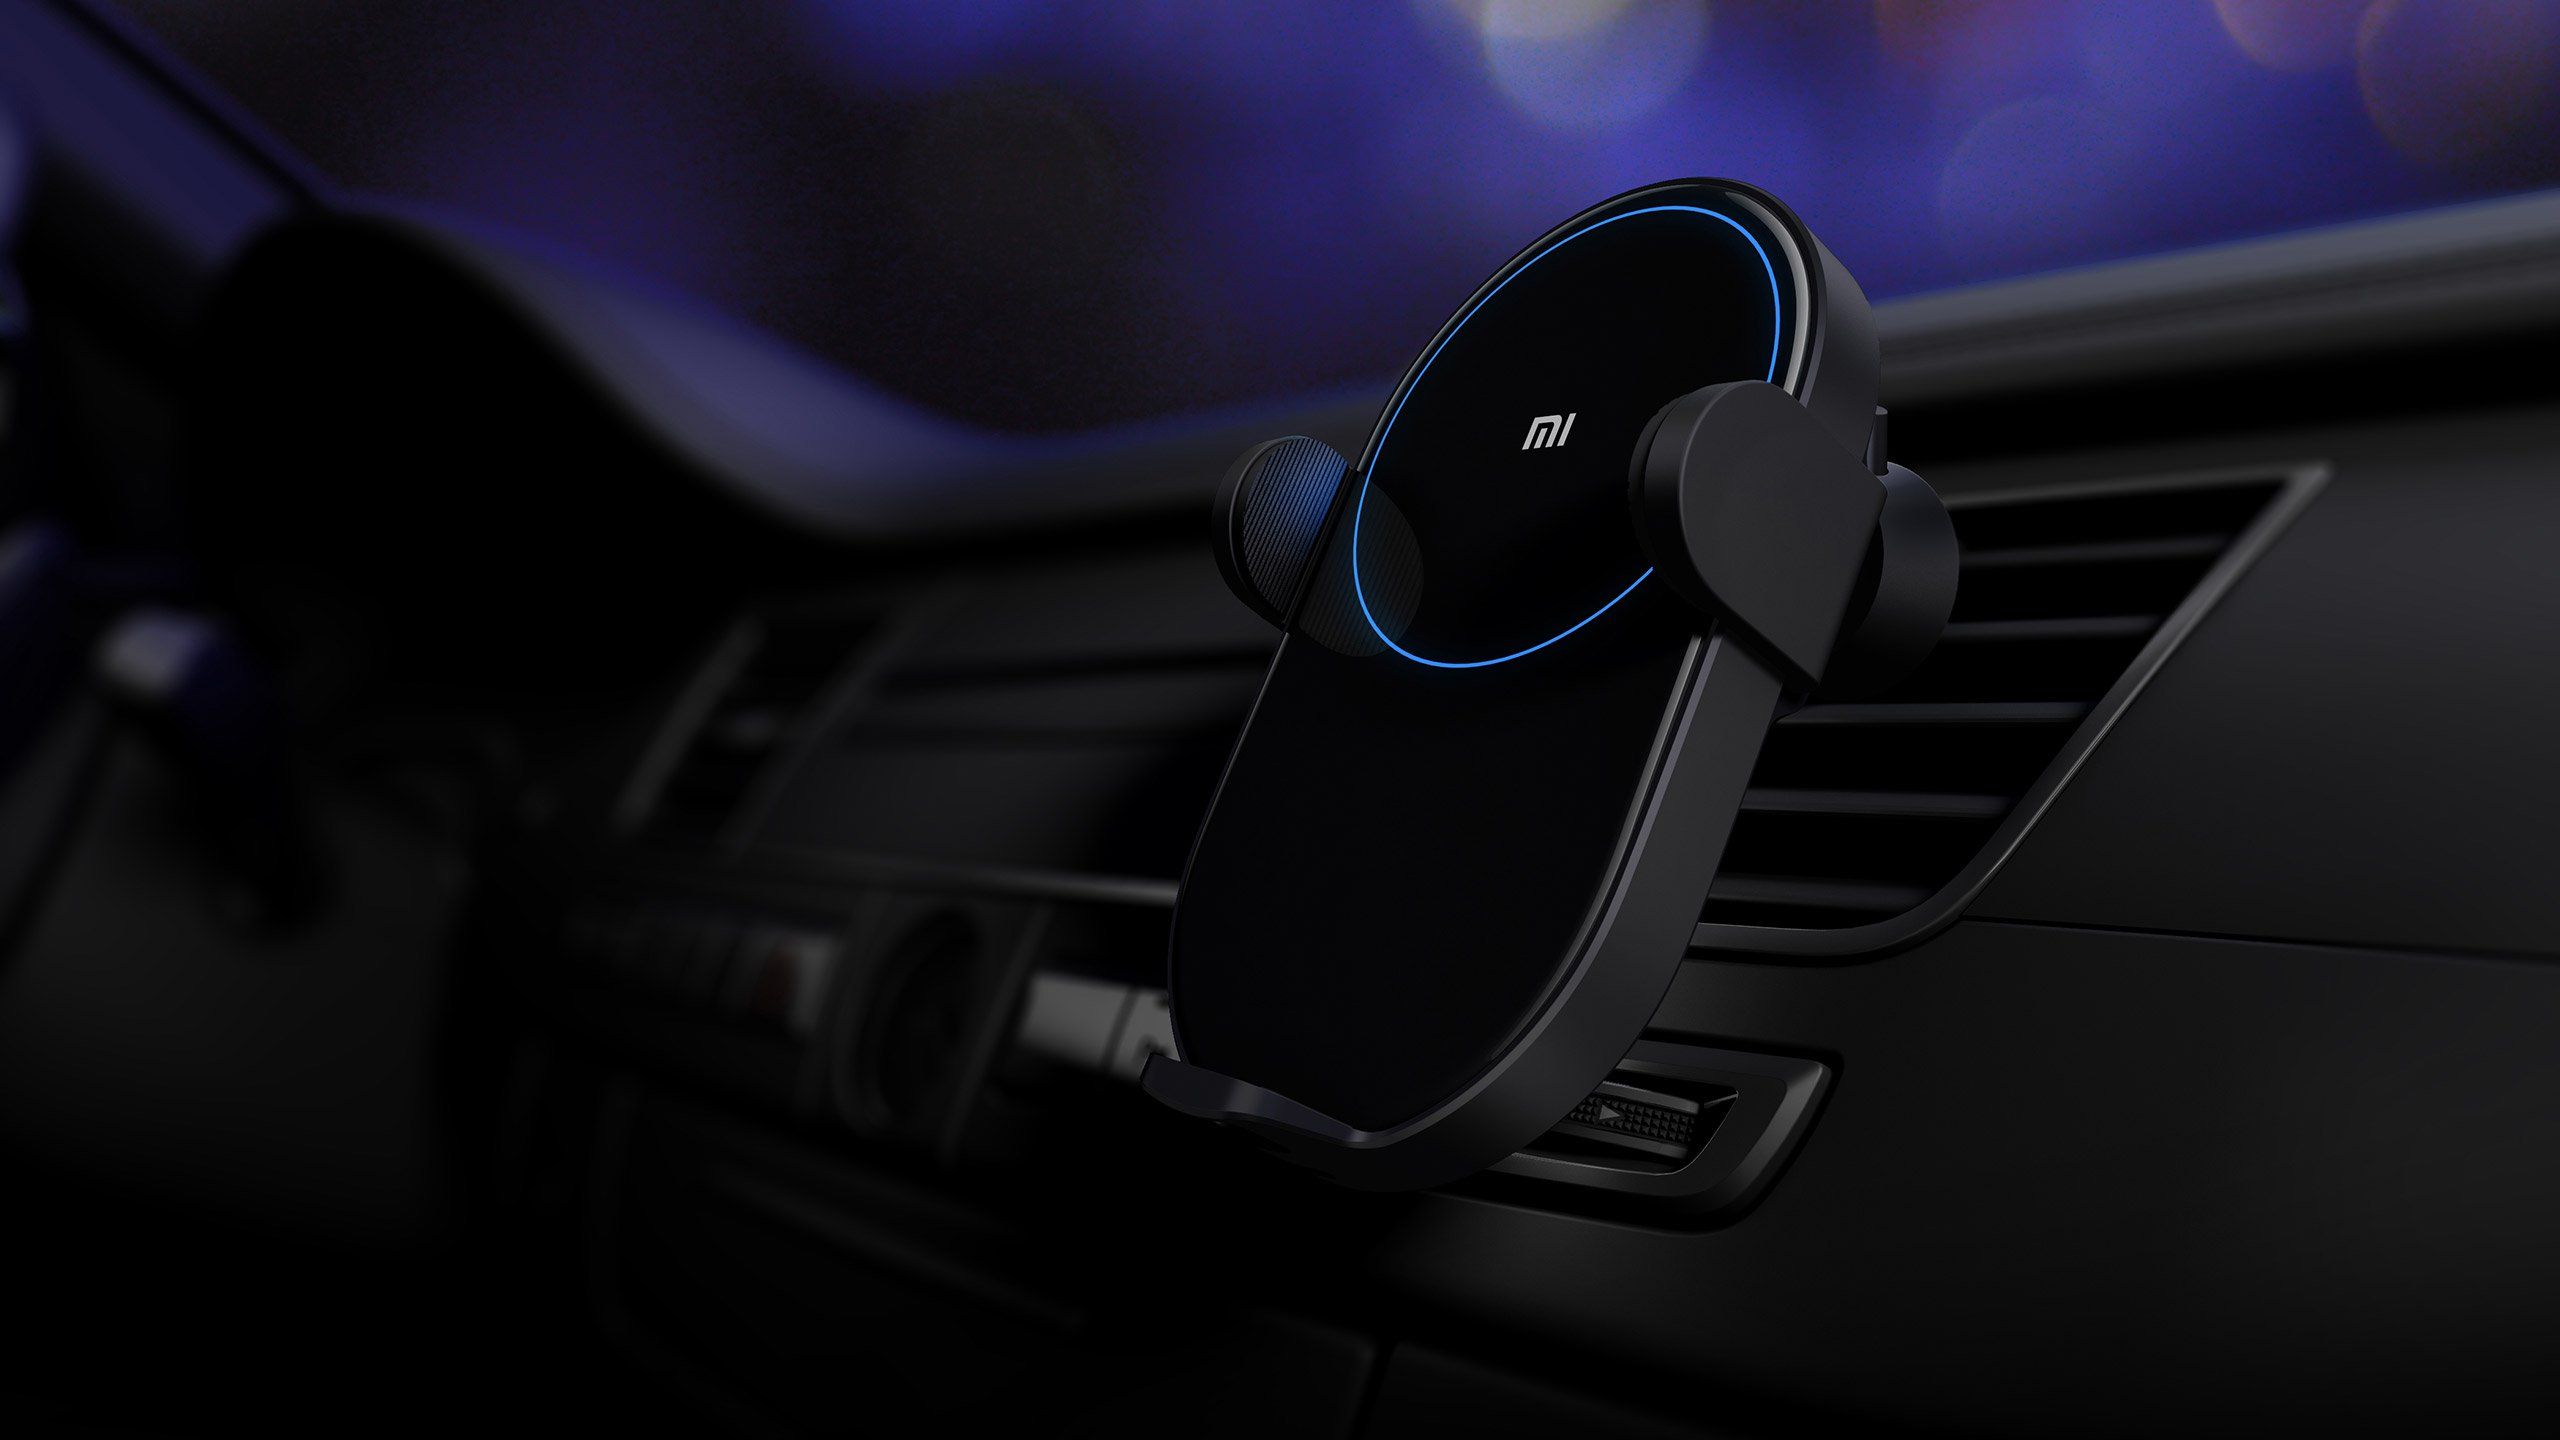 s10 car charger